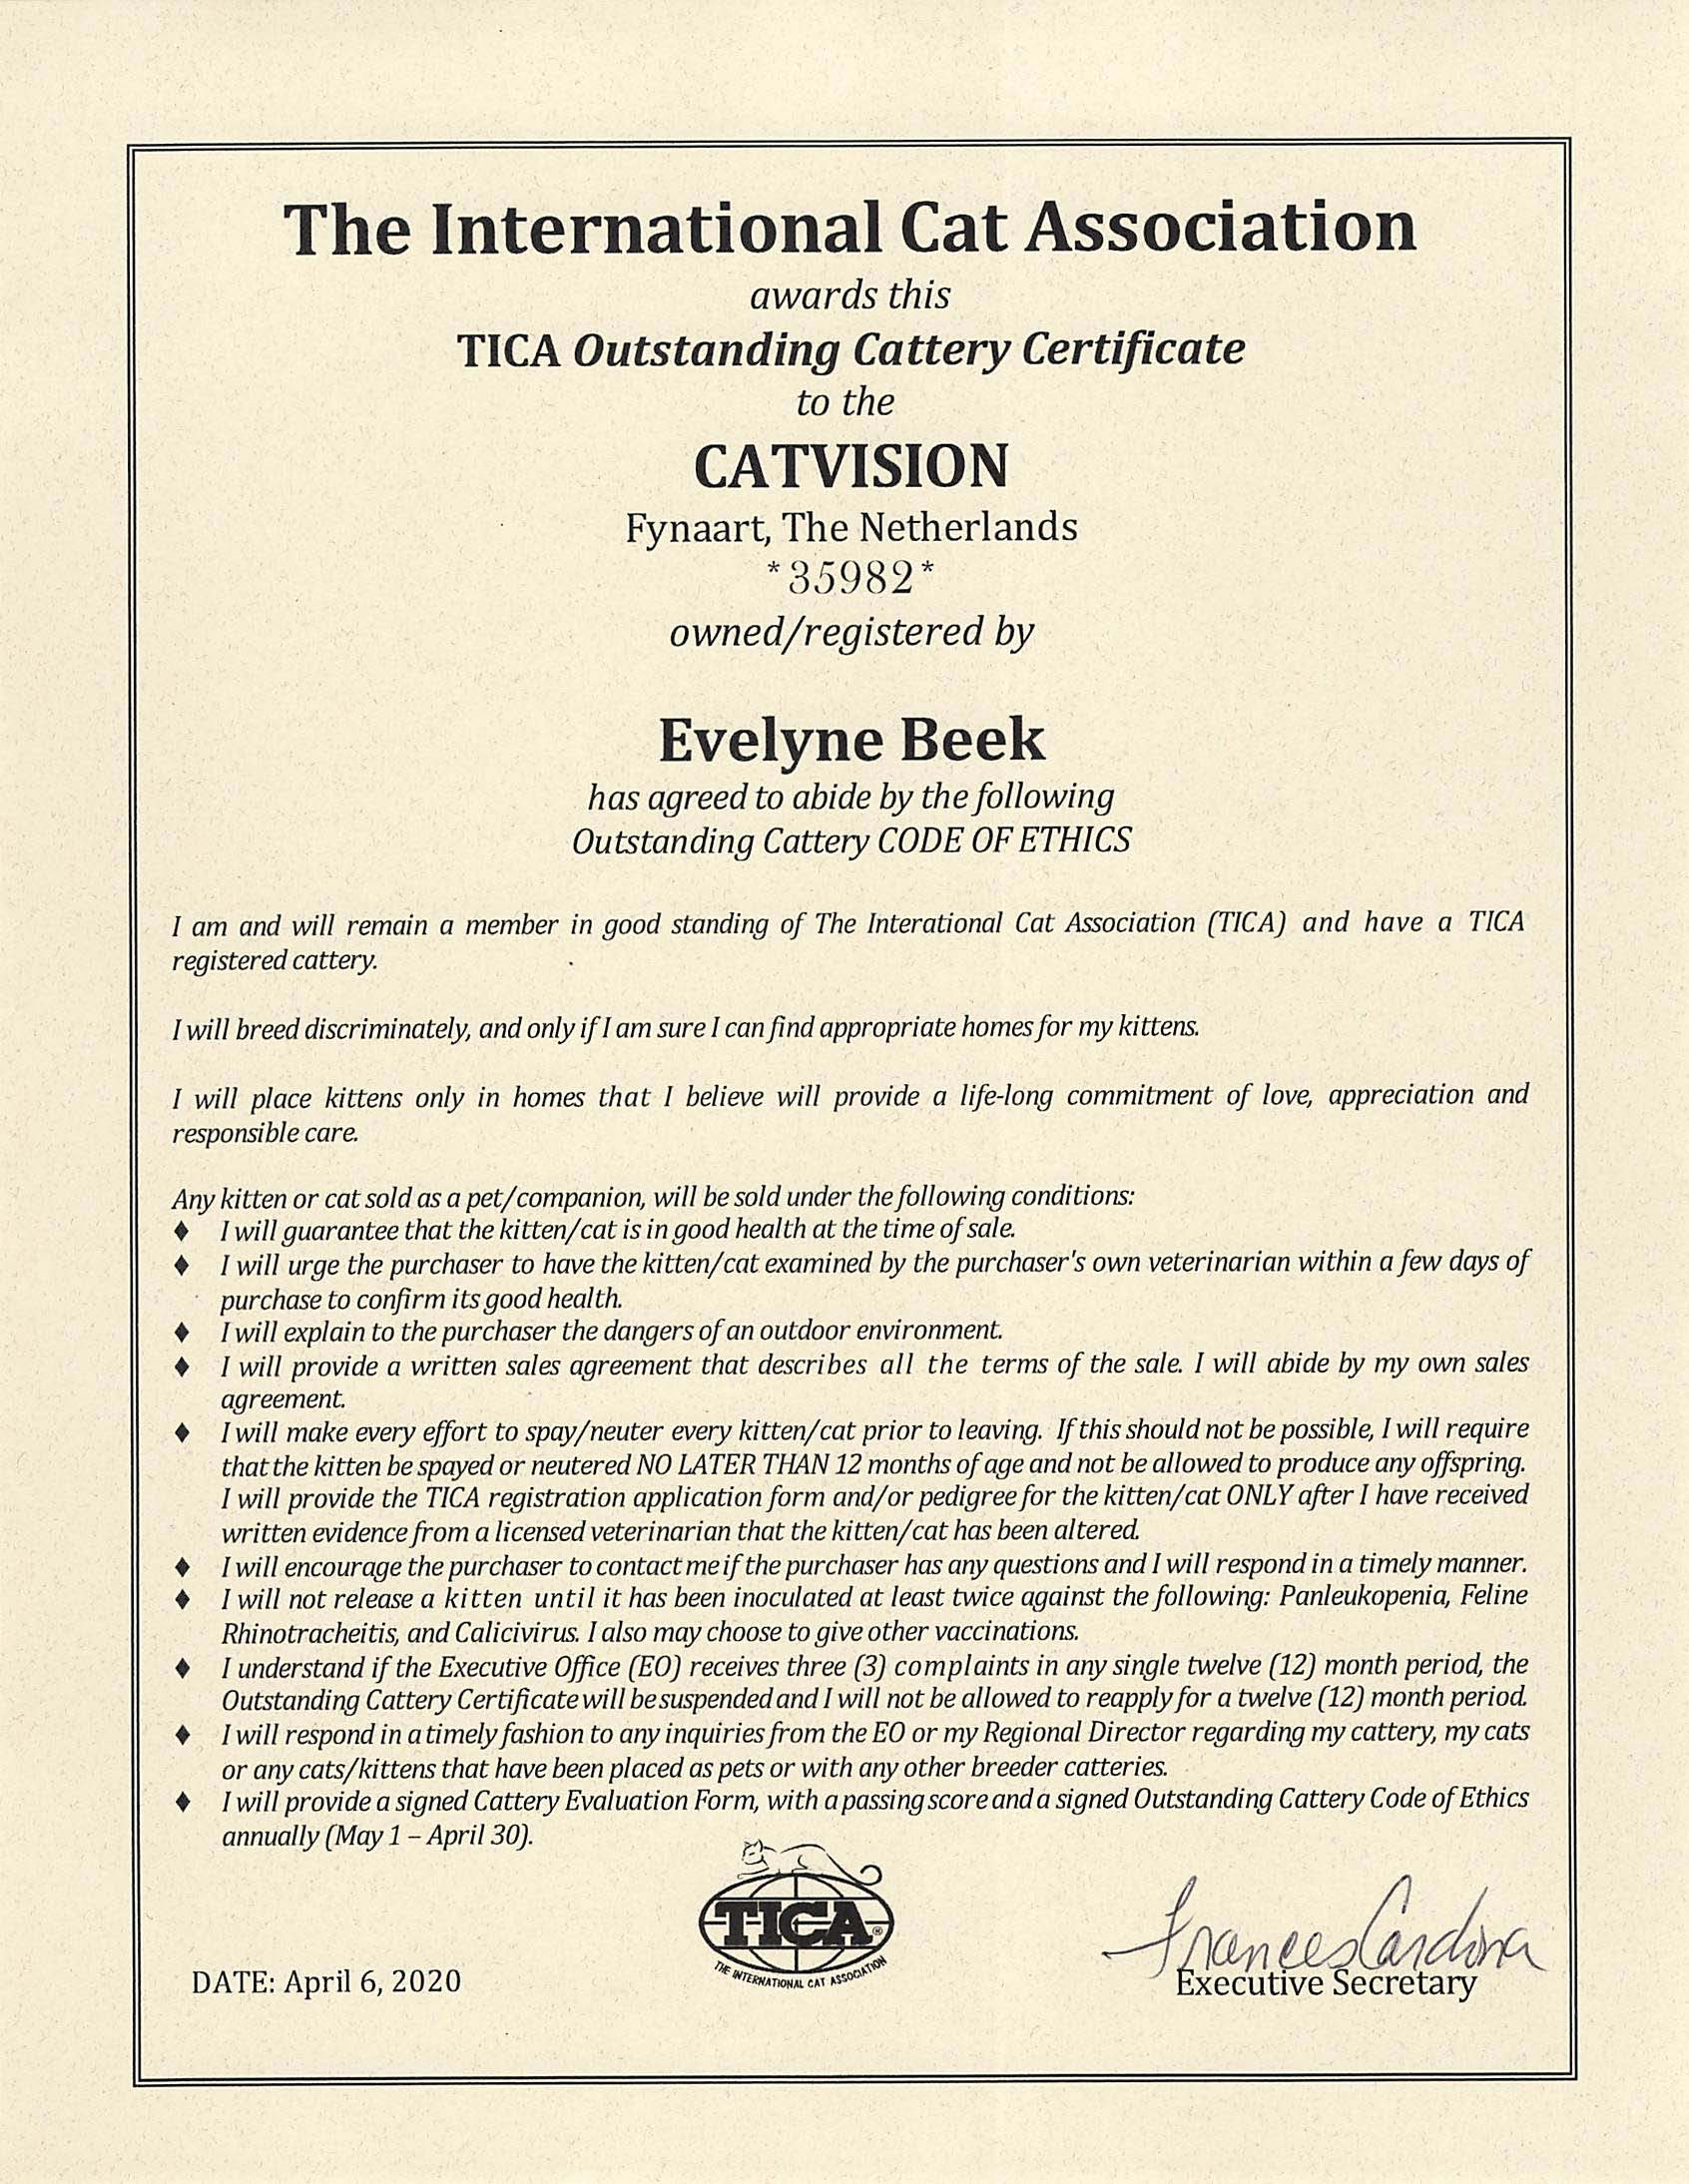 TICA outstanding cattery certificate